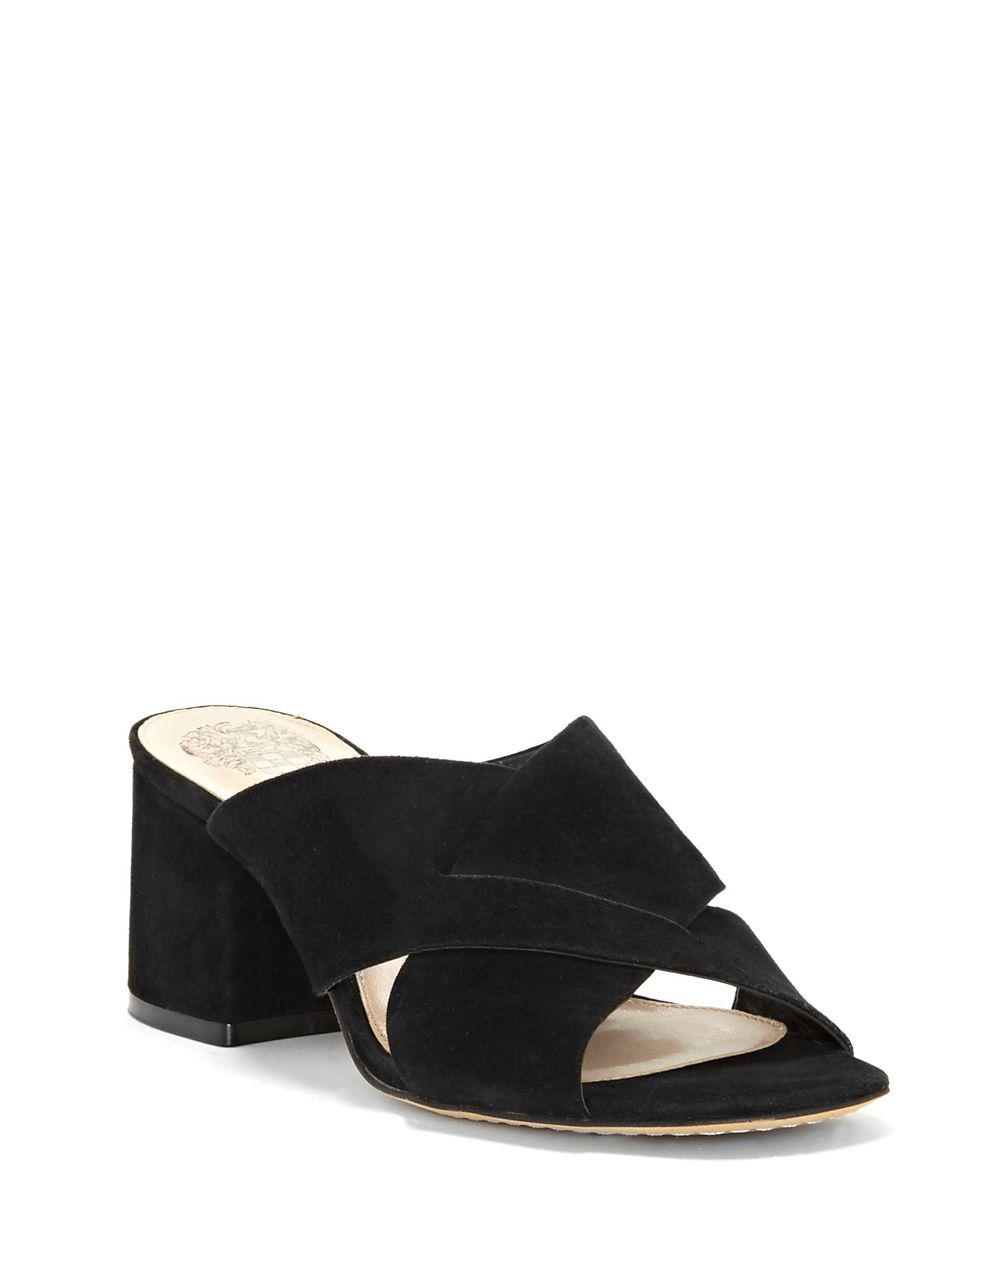 efb2e89b27e Lyst - Vince Camuto Stania Suede Sandals in Black